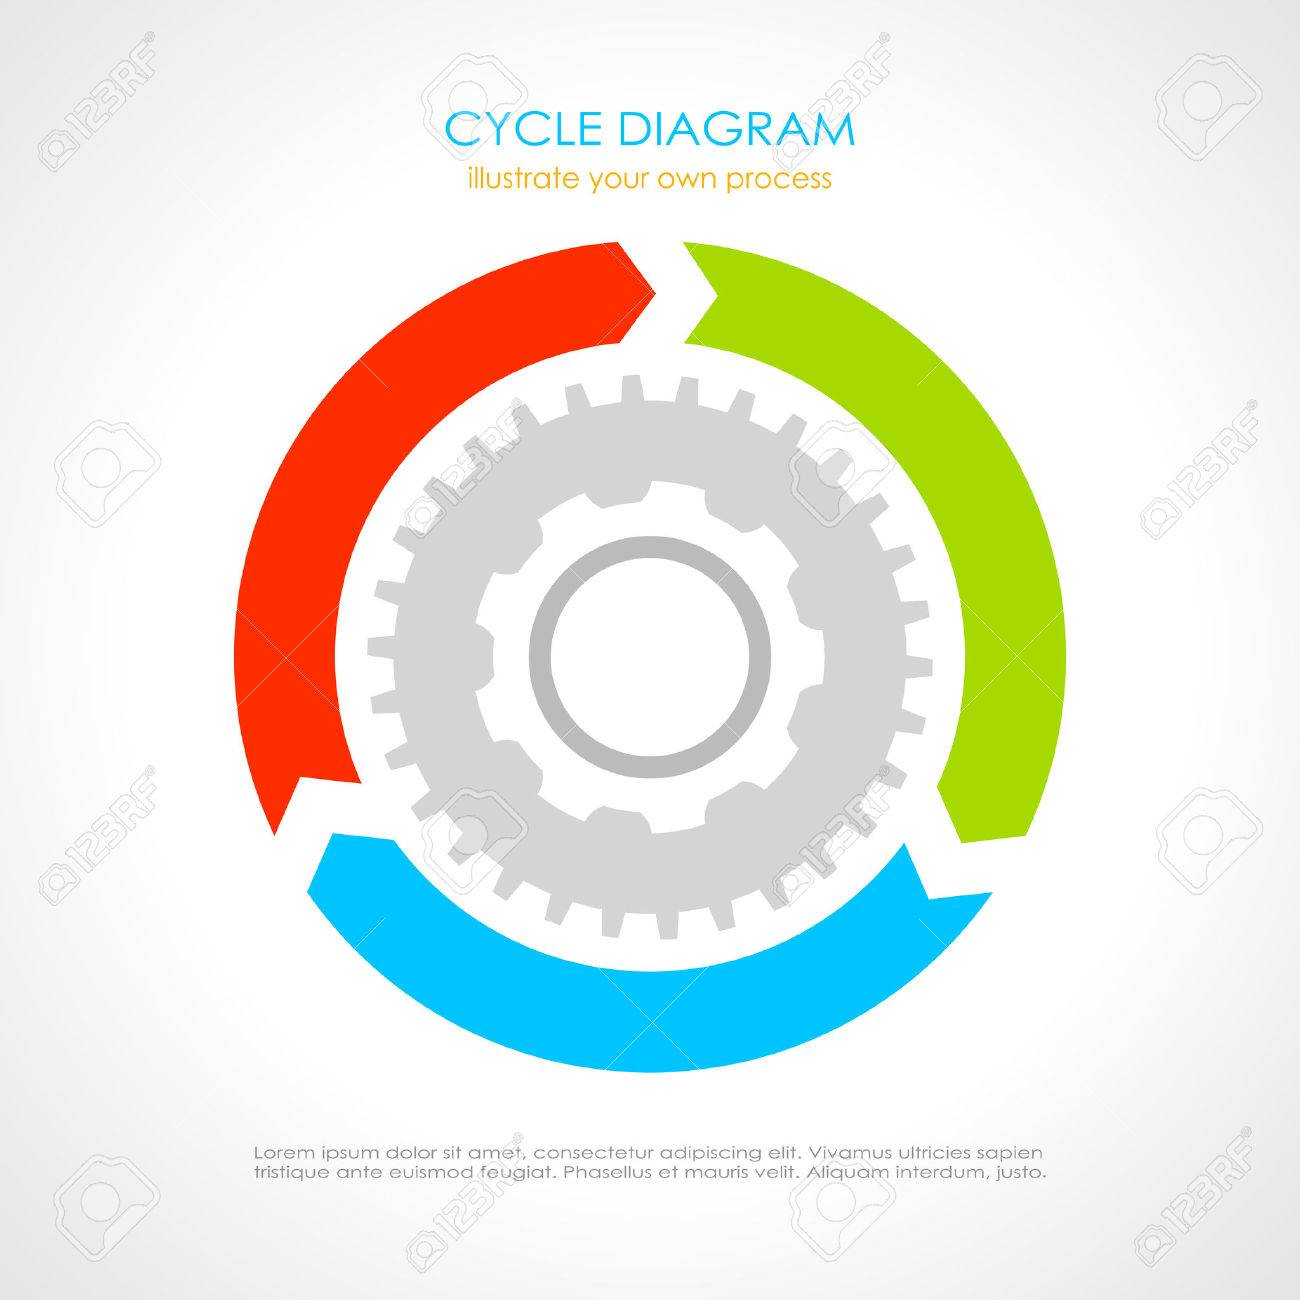 Process cycling arrow by arrow royalty free stock images image - Cycle Diagram Stock Vector 30494387 Cycle Diagram Arrow Process